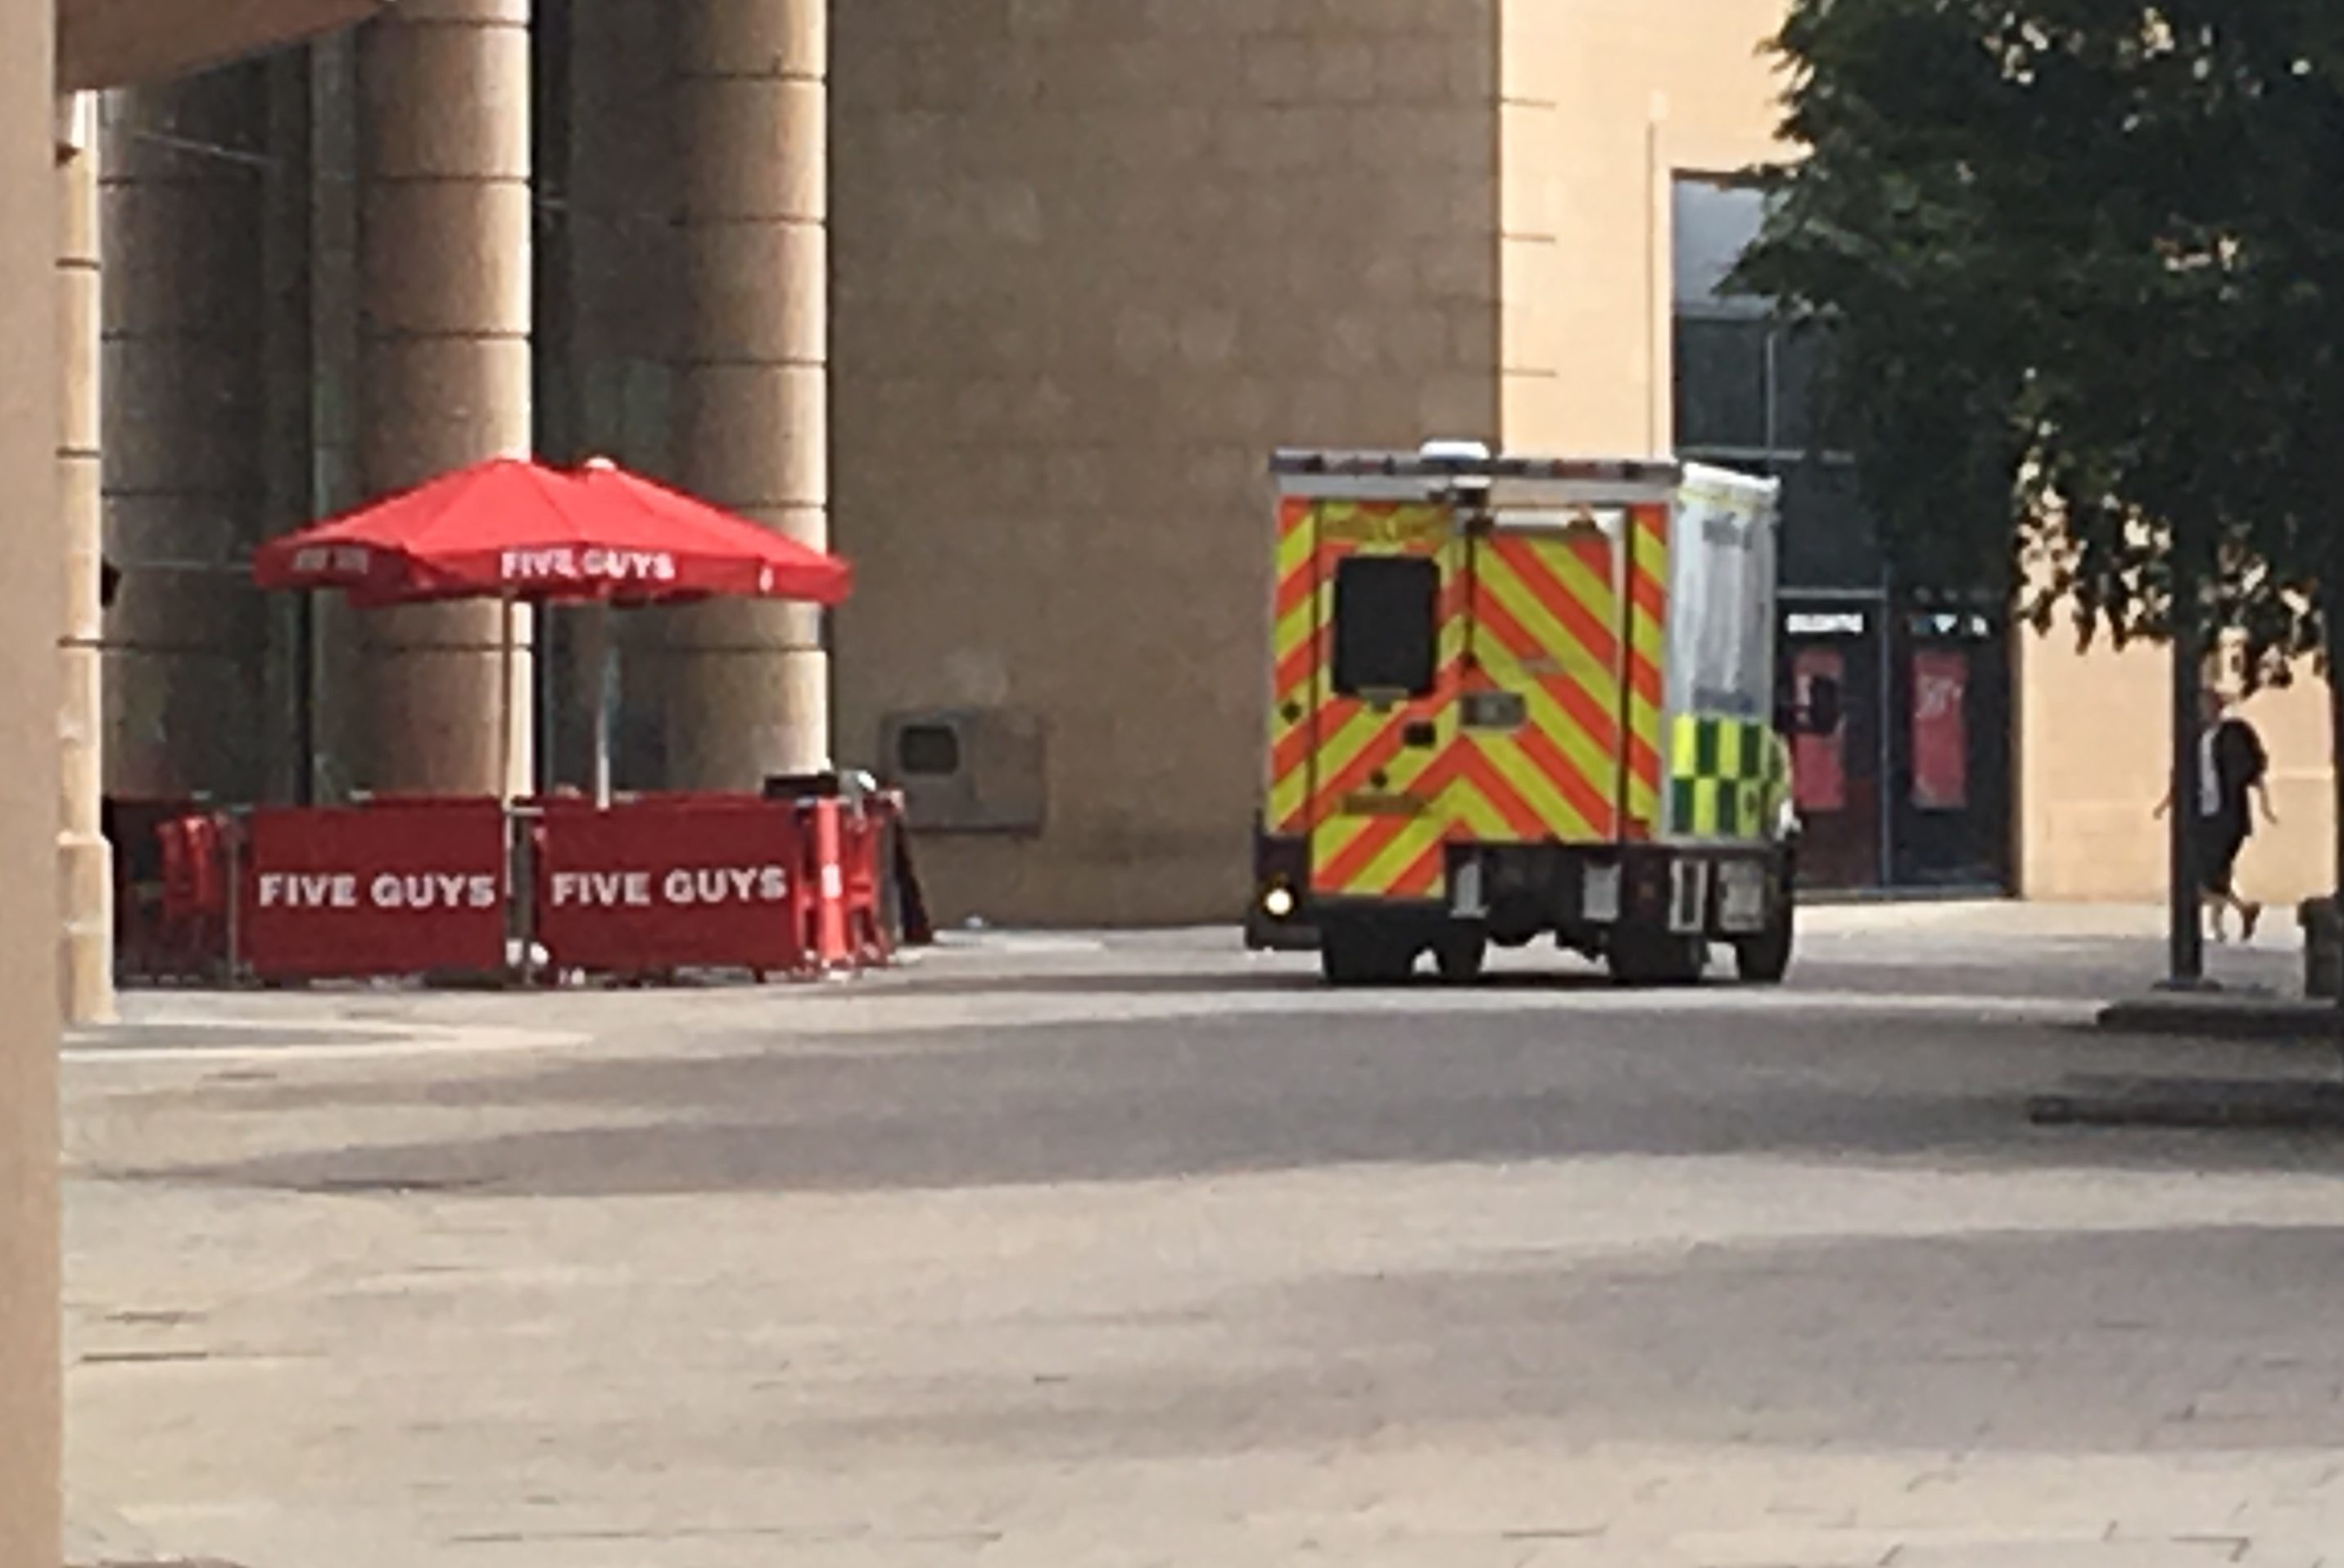 An ambulance outside the Overgate after the dramatic incident.